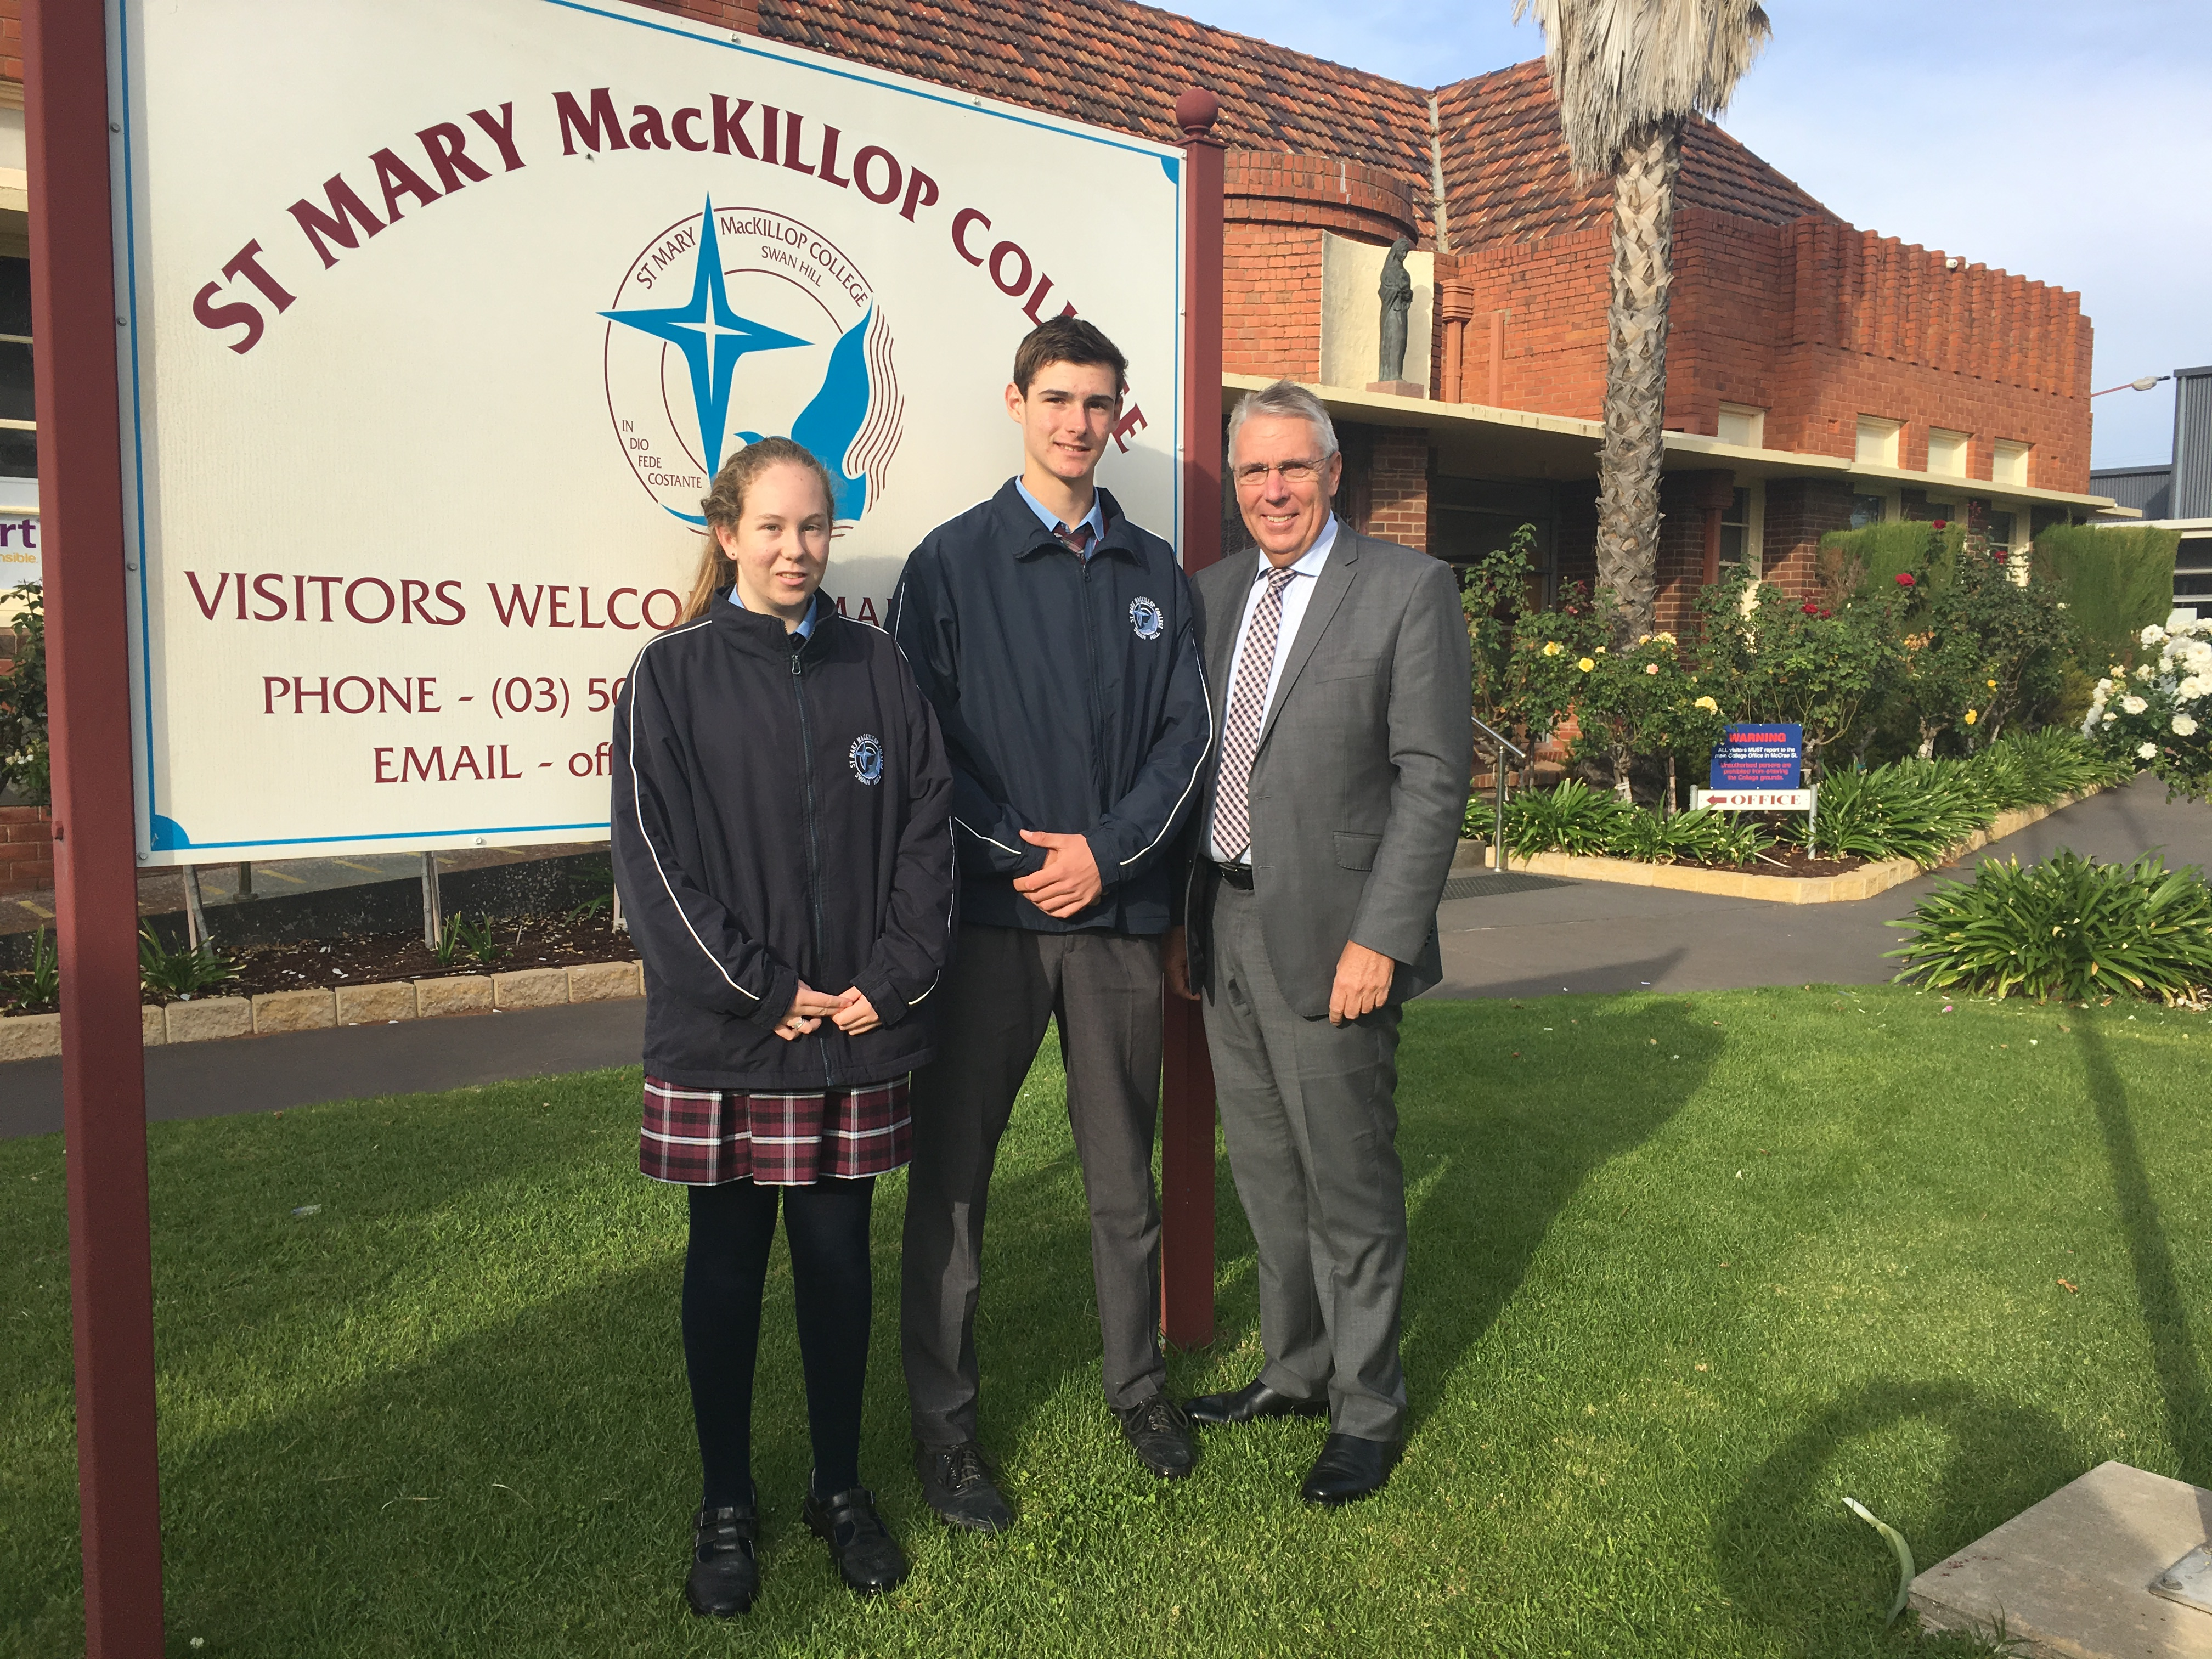 Mary_MacKillop_College.jpg